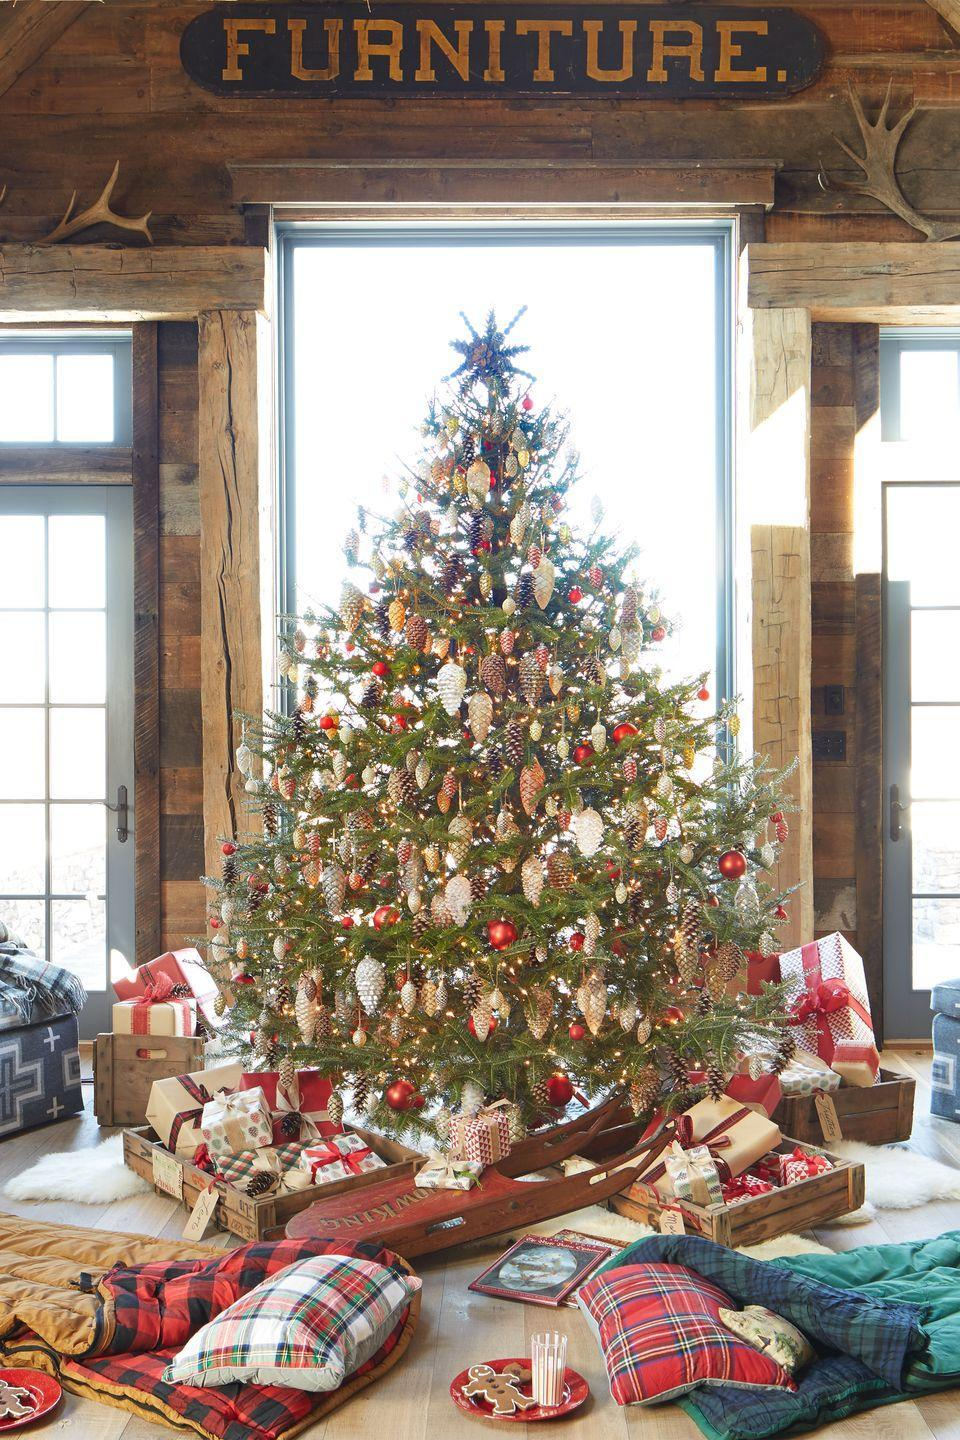 """<p class=""""imageContent"""">Kids will love this idea: Add cozy sleeping bags for """"campouts"""" under the Christmas tree.</p><p><a class=""""link rapid-noclick-resp"""" href=""""https://www.amazon.com/s/ref=nb_sb_noss?url=search-alias%3Daps&field-keywords=sleeping+bags&rh=i%3Aaps%2Ck%3Asleeping+bags&tag=syn-yahoo-20&ascsubtag=%5Bartid%7C10050.g.1247%5Bsrc%7Cyahoo-us"""" rel=""""nofollow noopener"""" target=""""_blank"""" data-ylk=""""slk:SHOP SLEEPING BAGS"""">SHOP SLEEPING BAGS</a> </p>"""